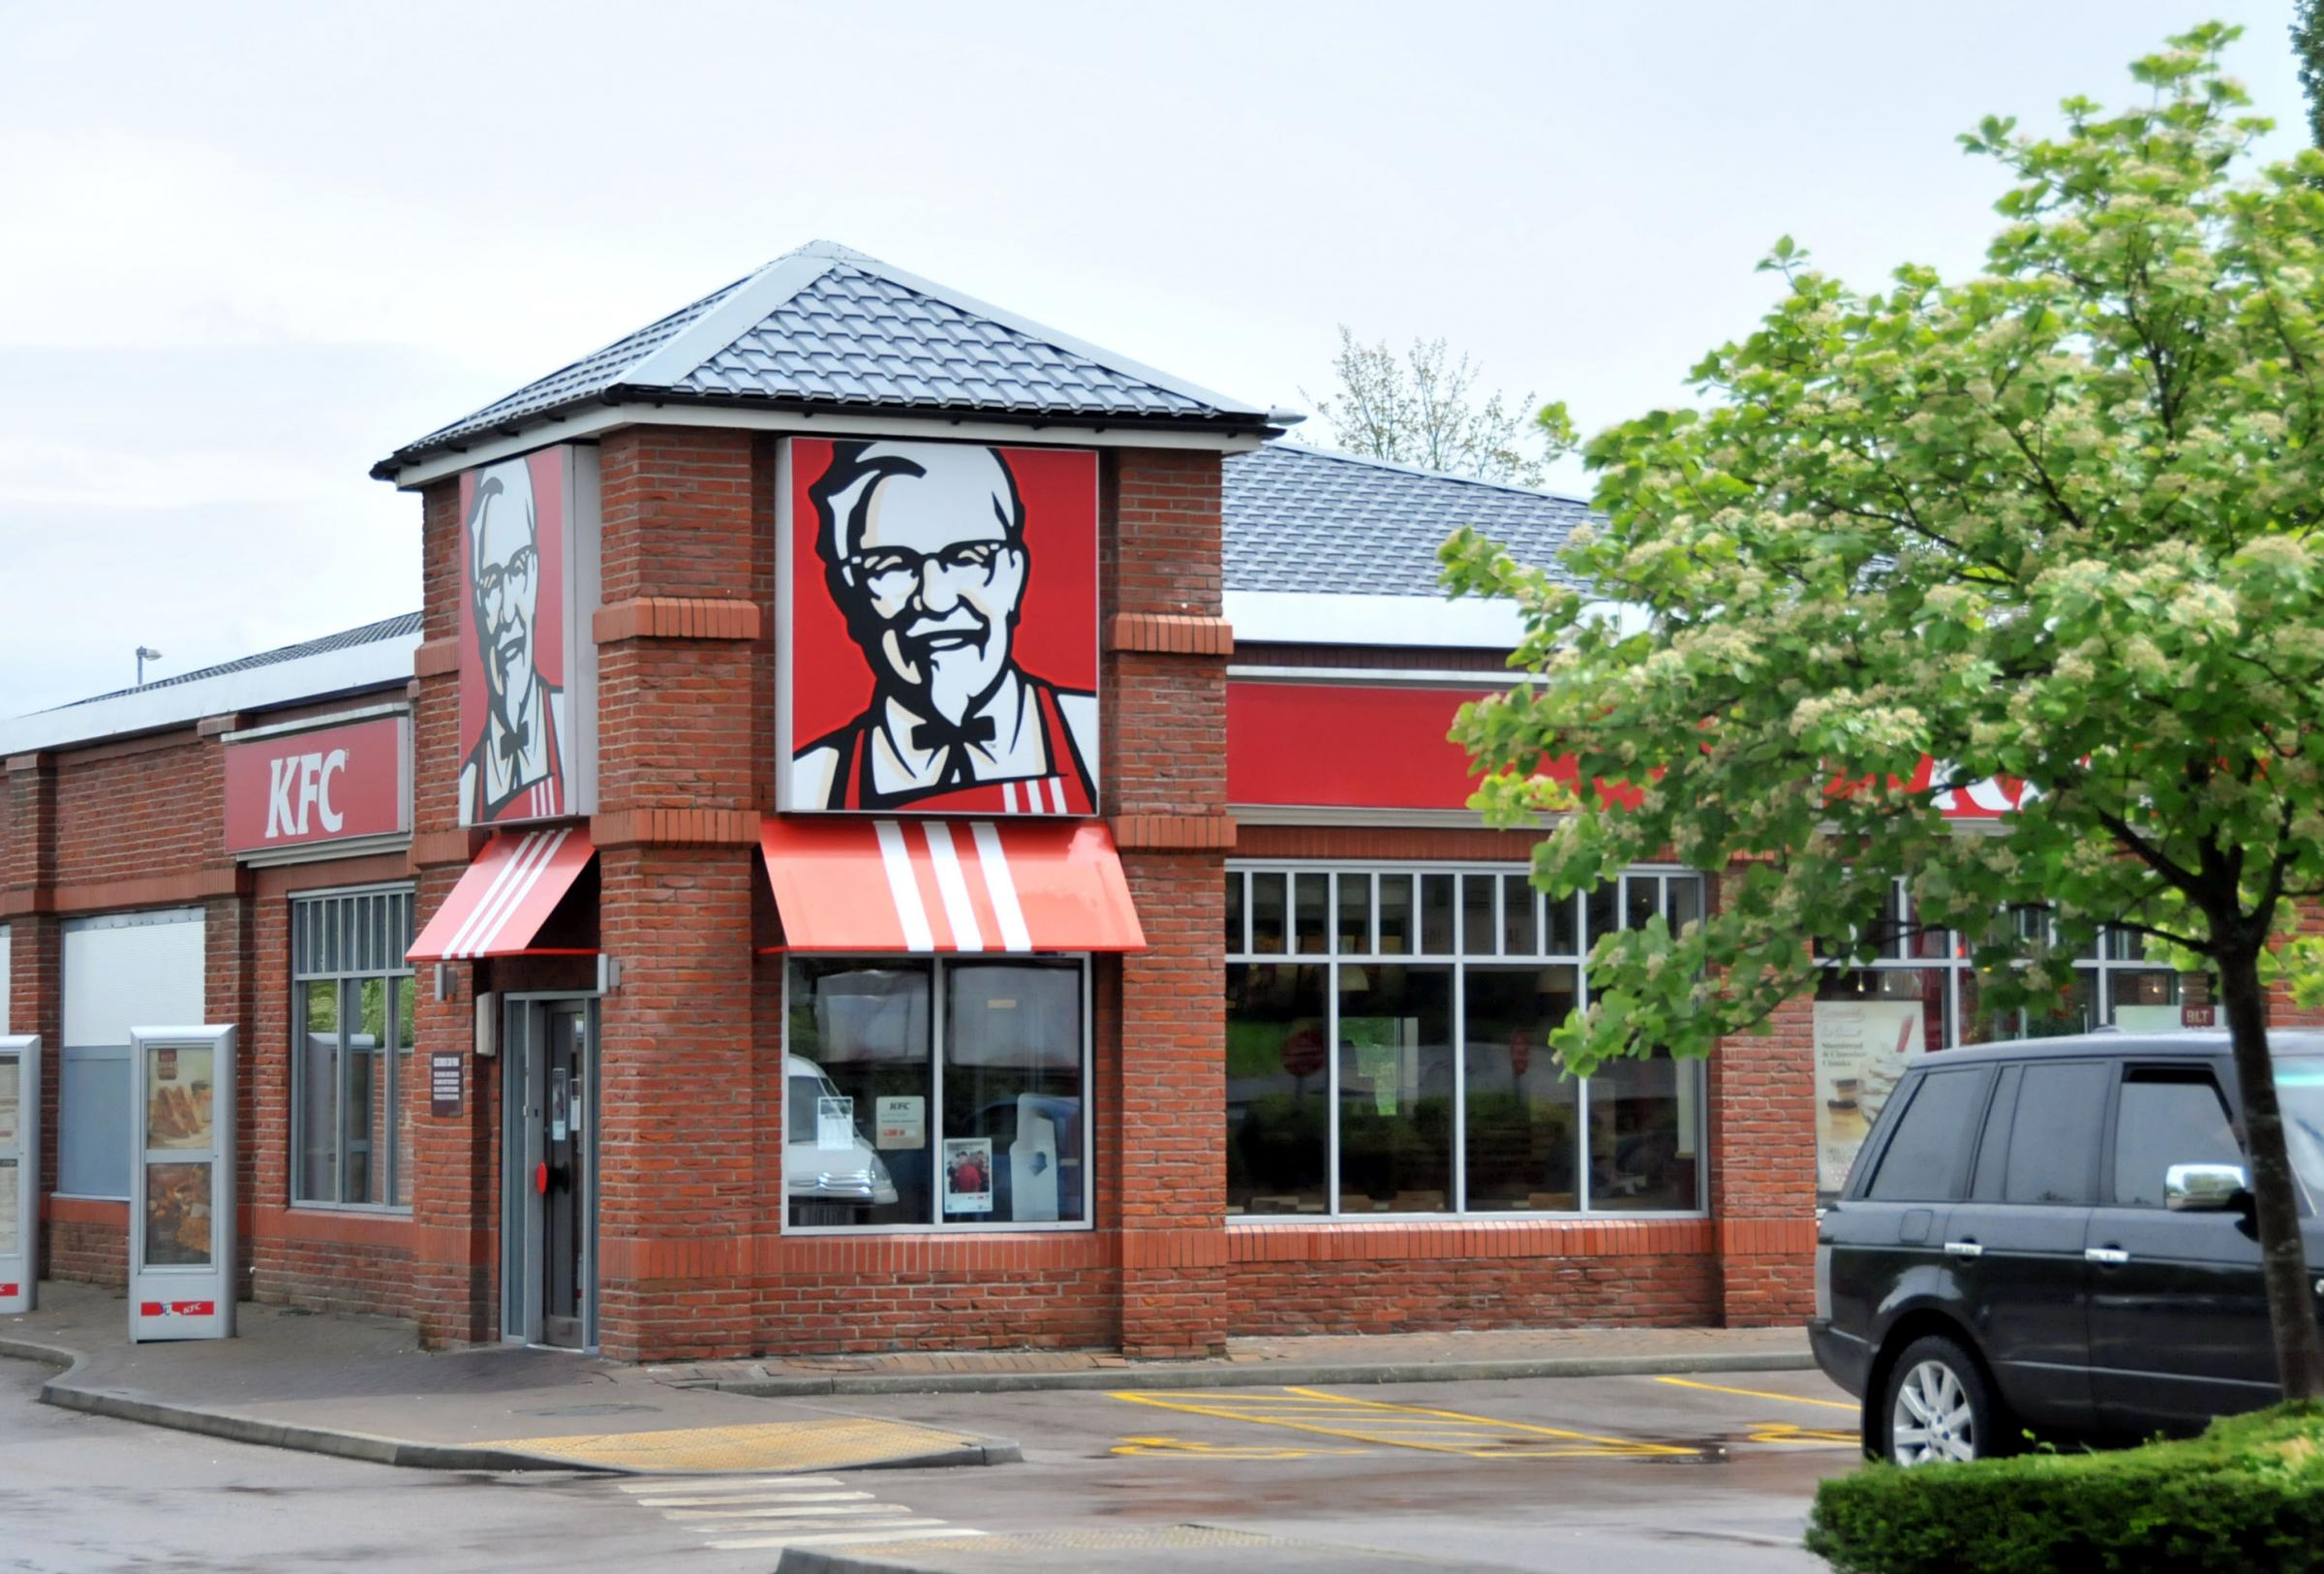 KFC in Northwich